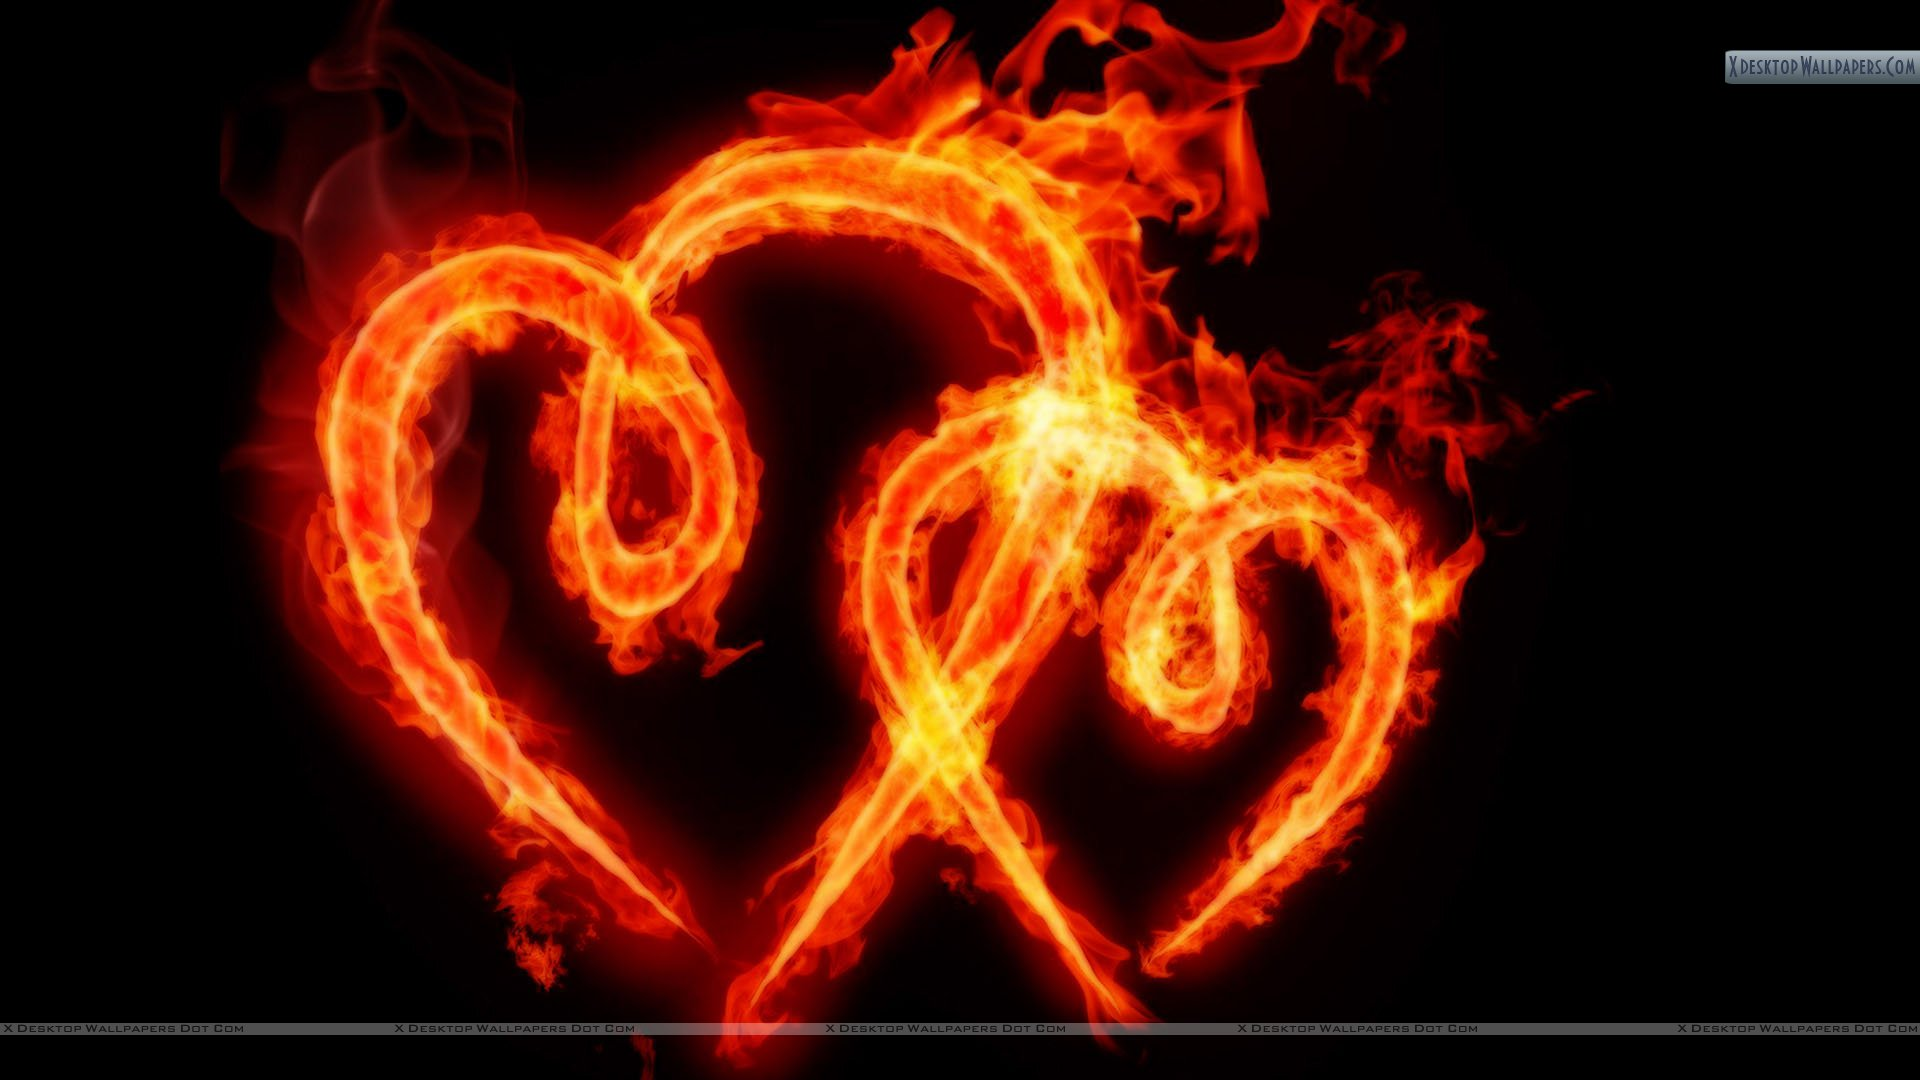 Heart with flames cool hearts on fire abtd cliparts